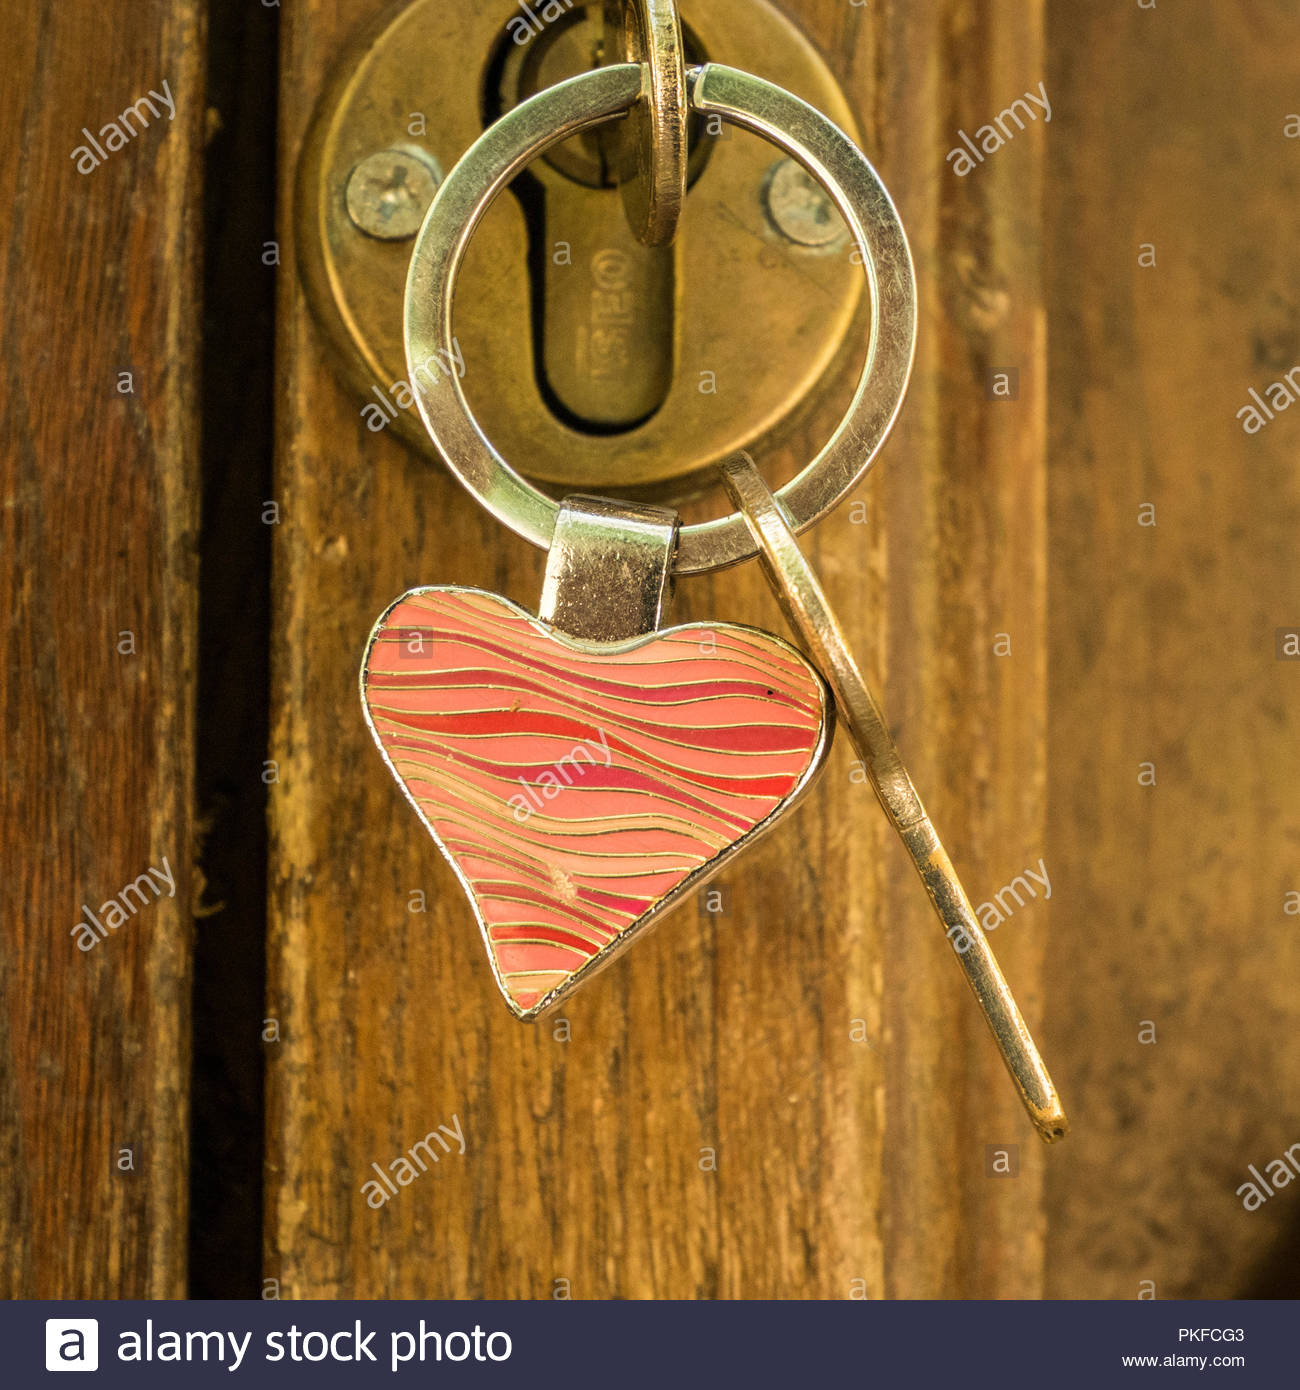 Heart Shaped Door Lock Stock Photos & Heart Shaped Door Lock Stock For 2018 Heart Shaped Padlock Rings (View 8 of 25)